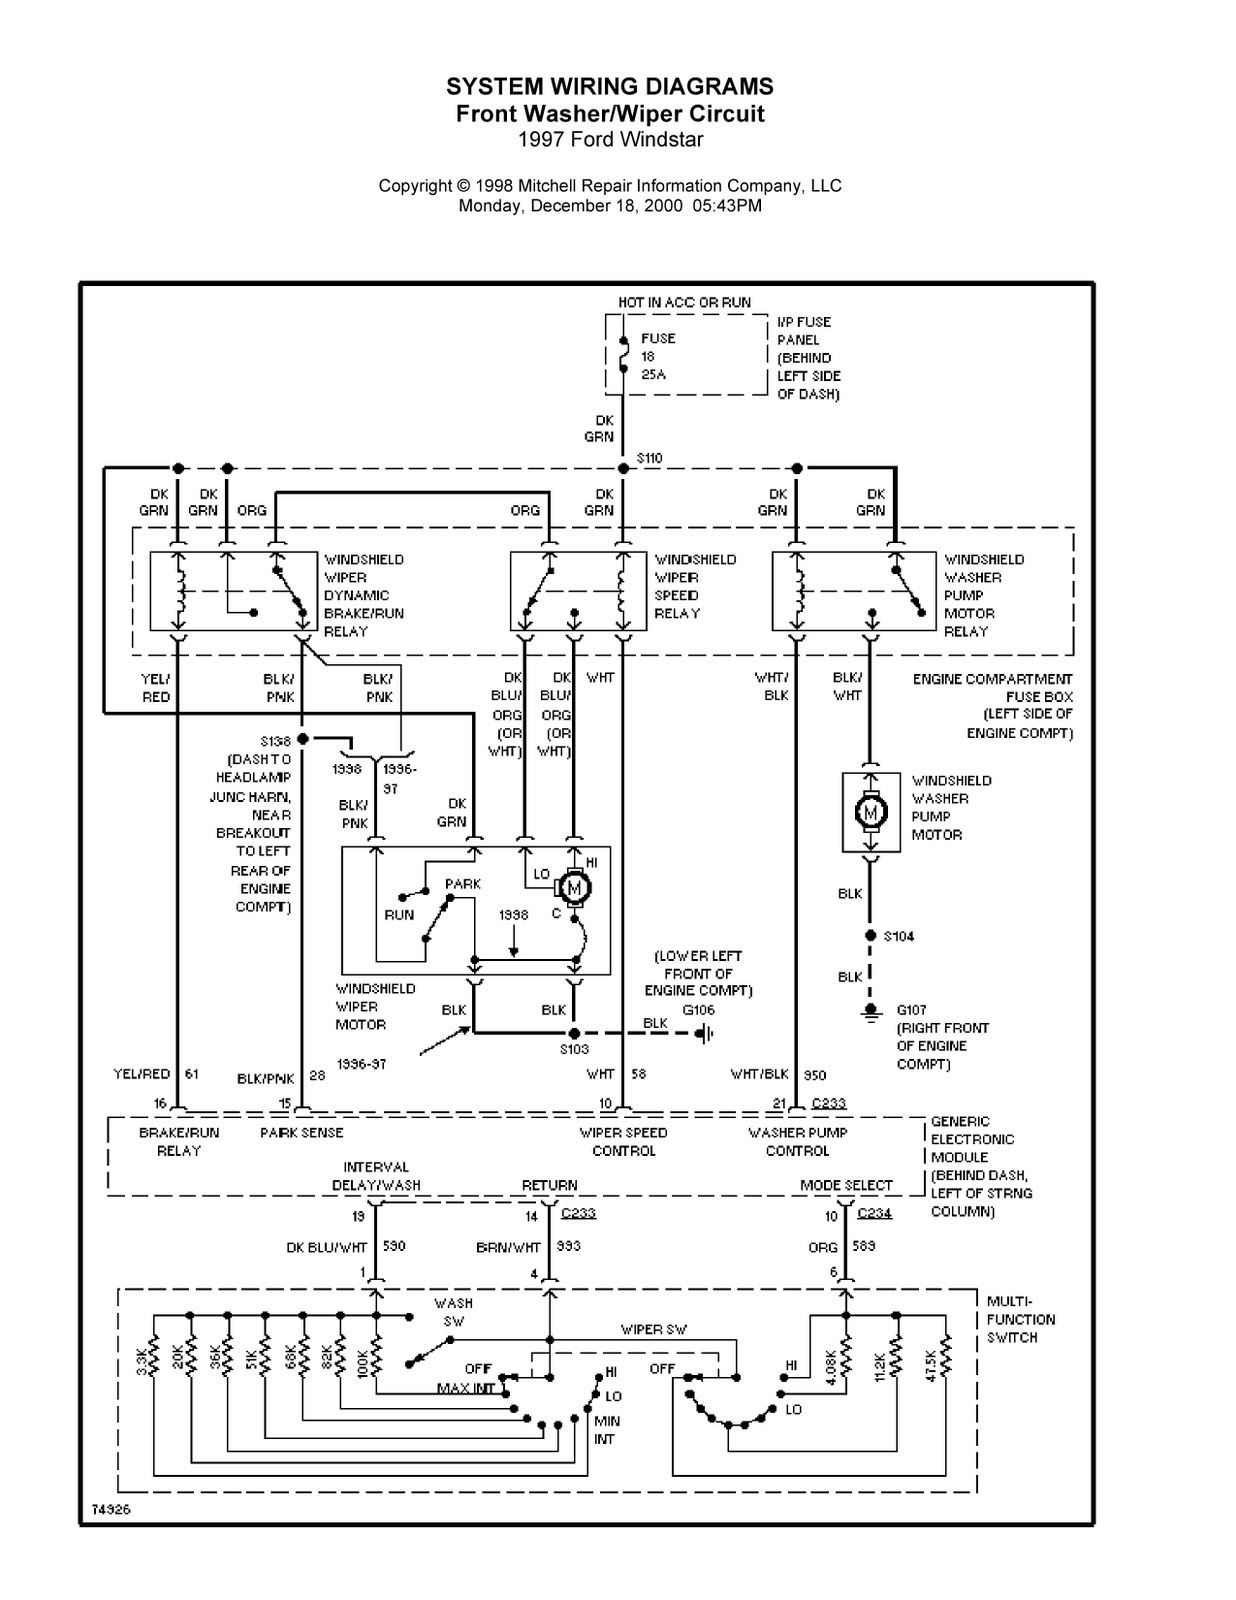 0051 1997 ford windstar complete system wiring diagrams wiring 1997 f350 wiring diagram at bayanpartner.co